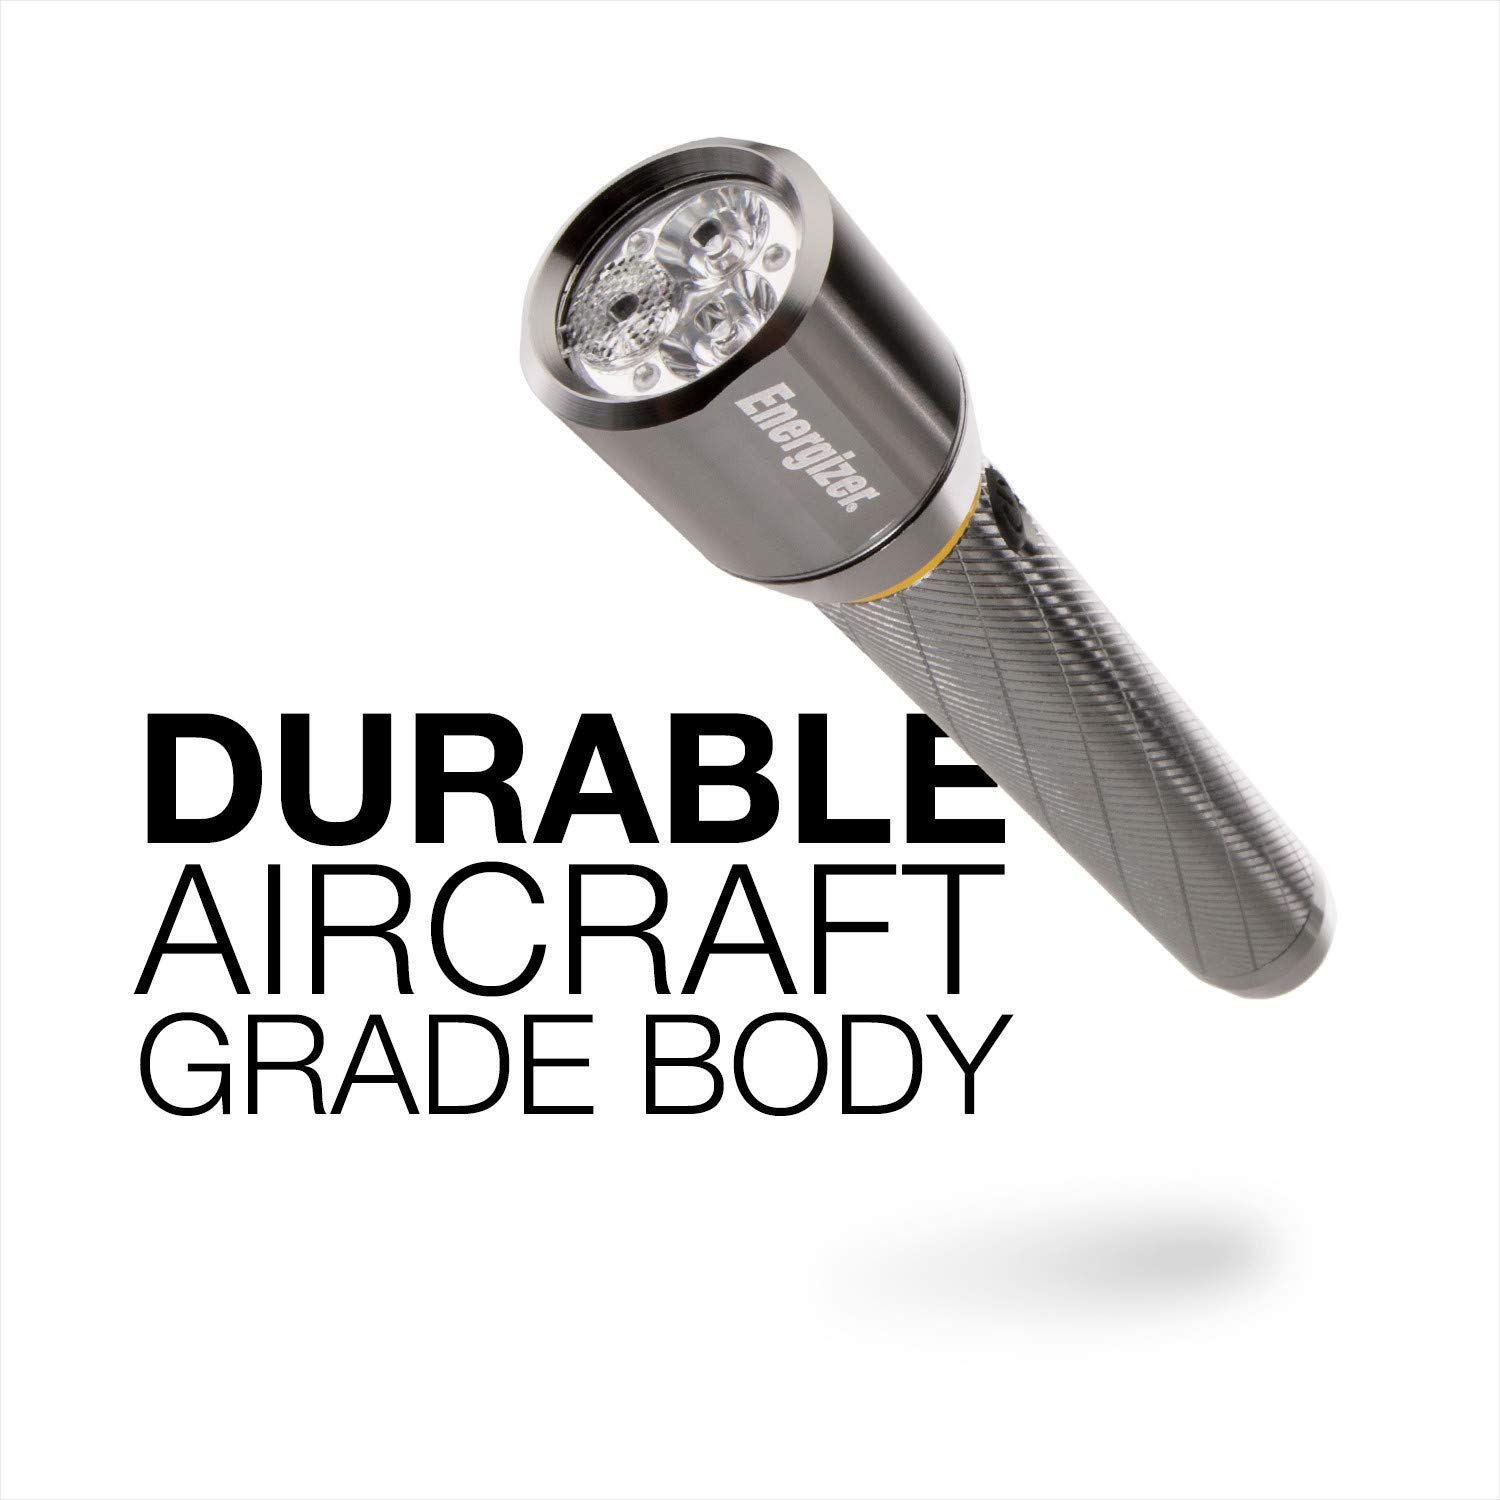 Energizer LED Metal Flashlight, 600 Lumens Bright LED, Durable Aircraft-Grade Metal Body, IPX4 Water-Resistant, 3 Modes